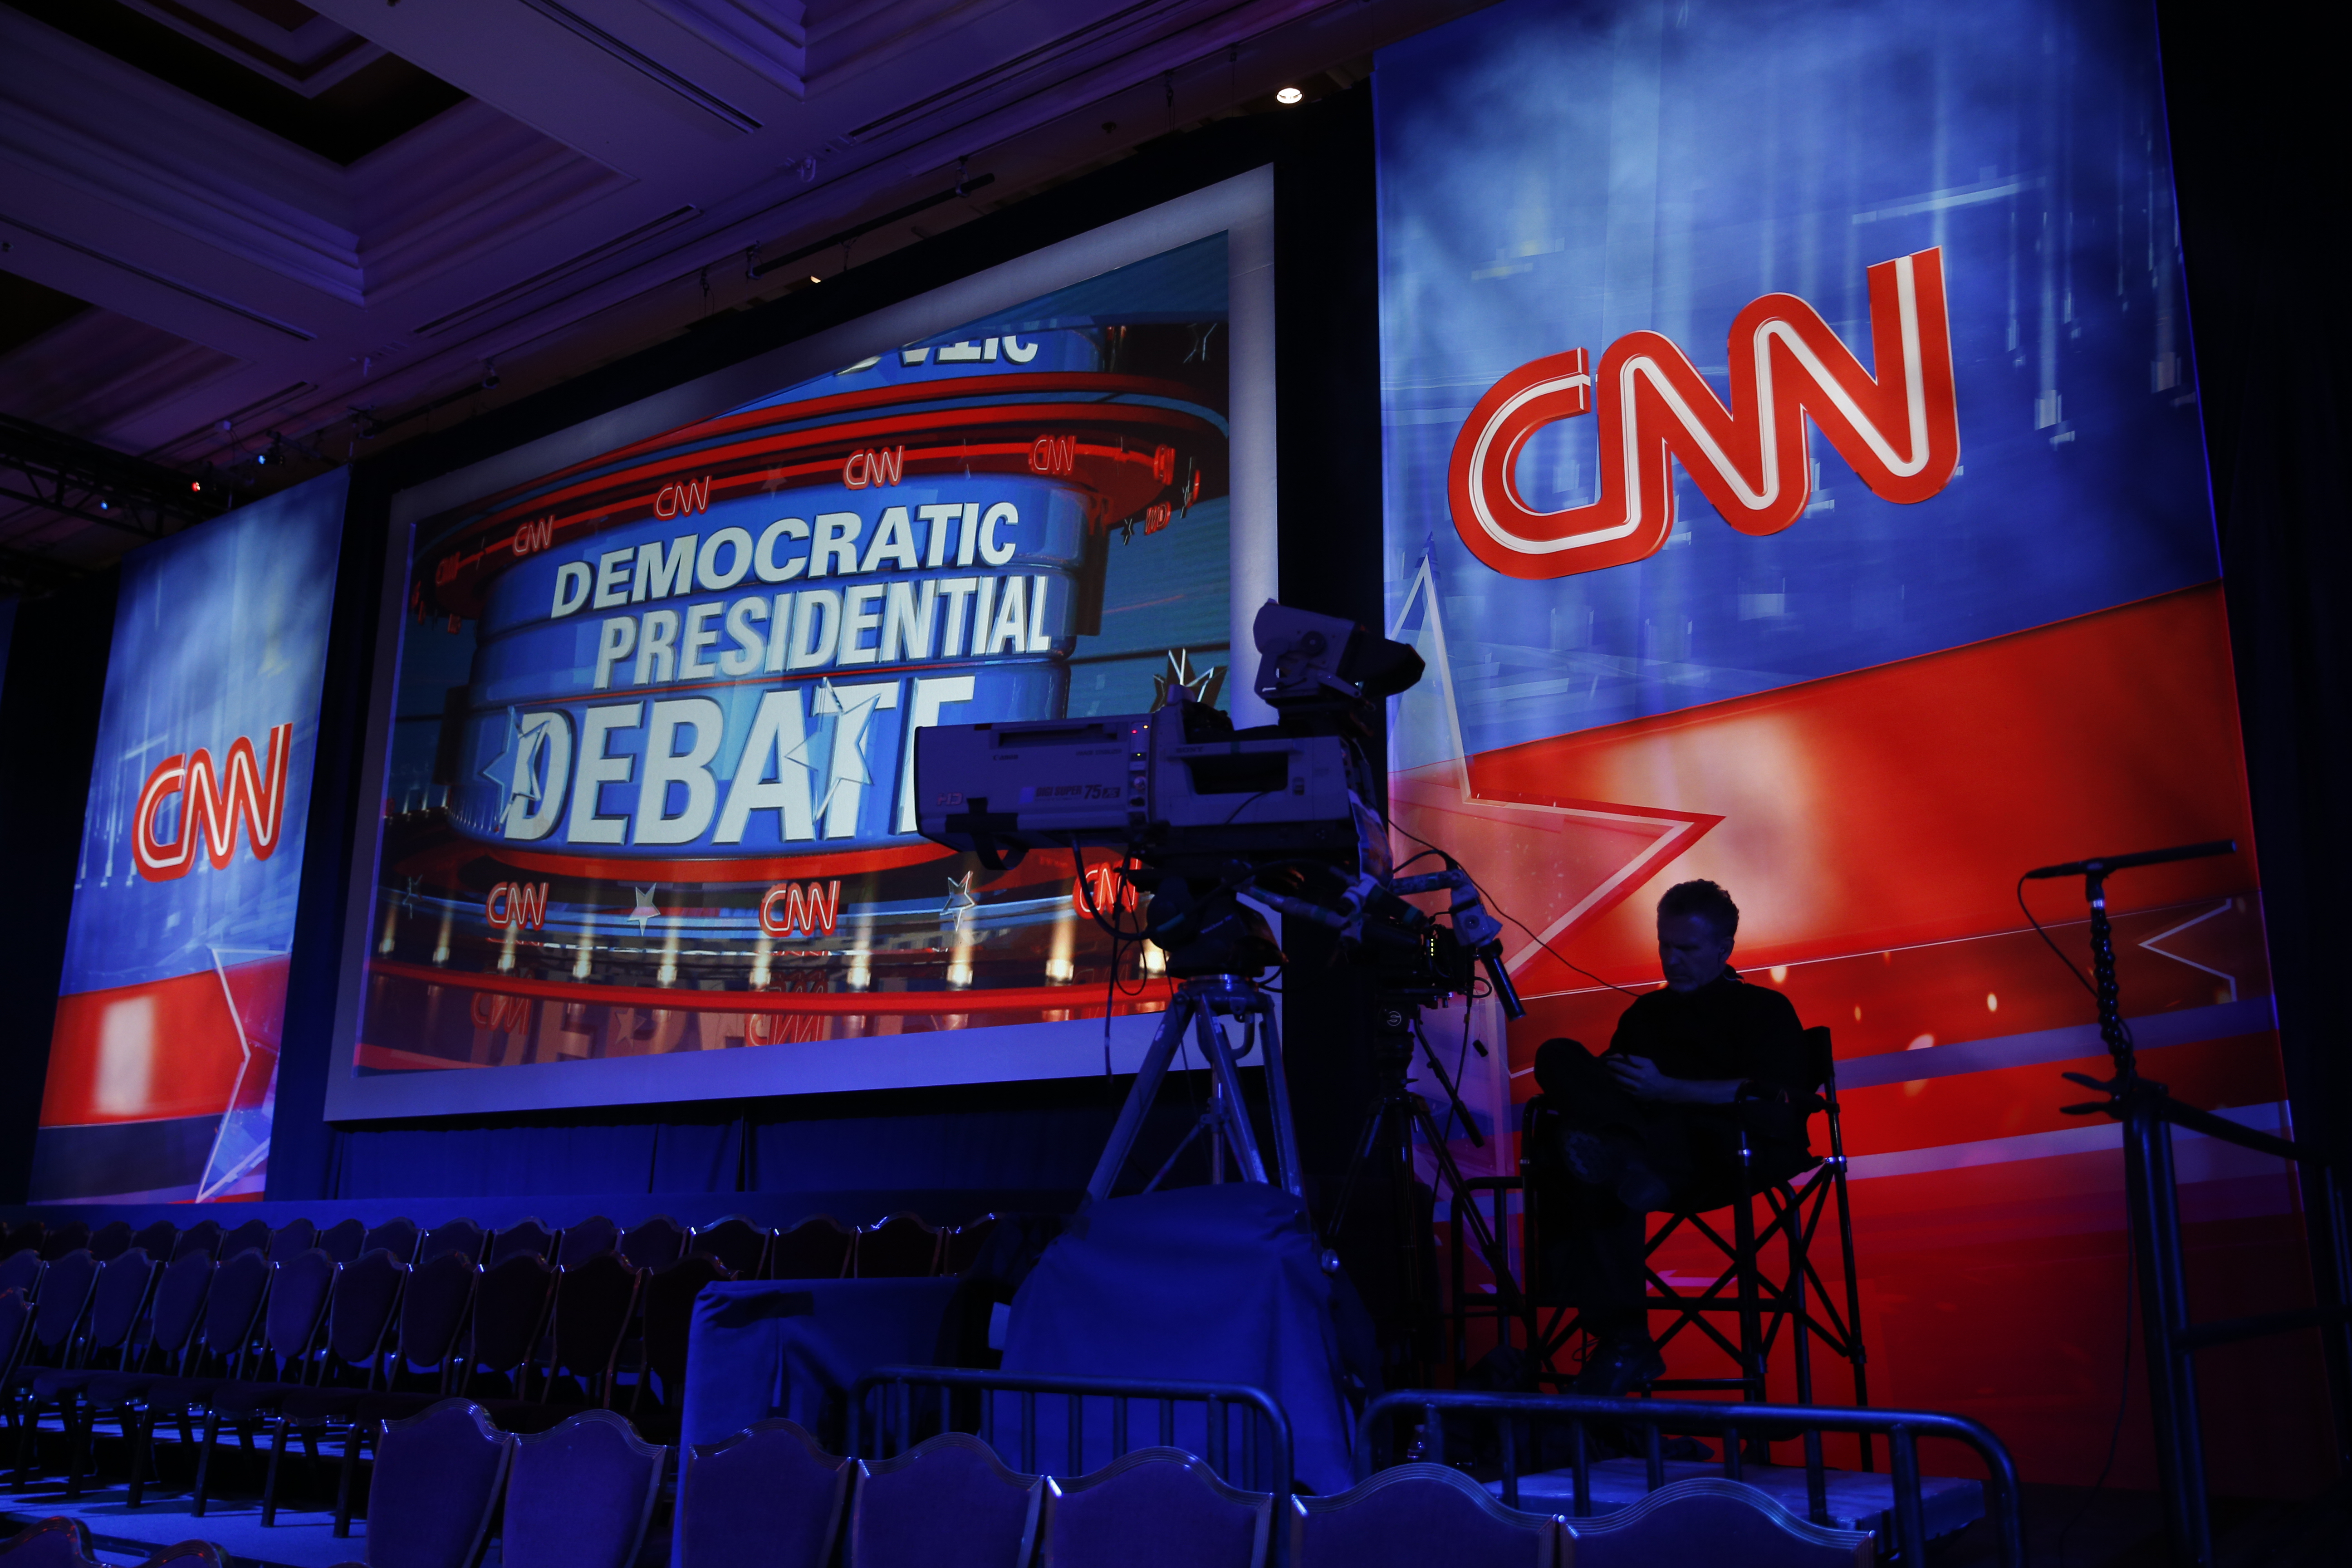 Clinton seeks to move past email woes in Democratic debate